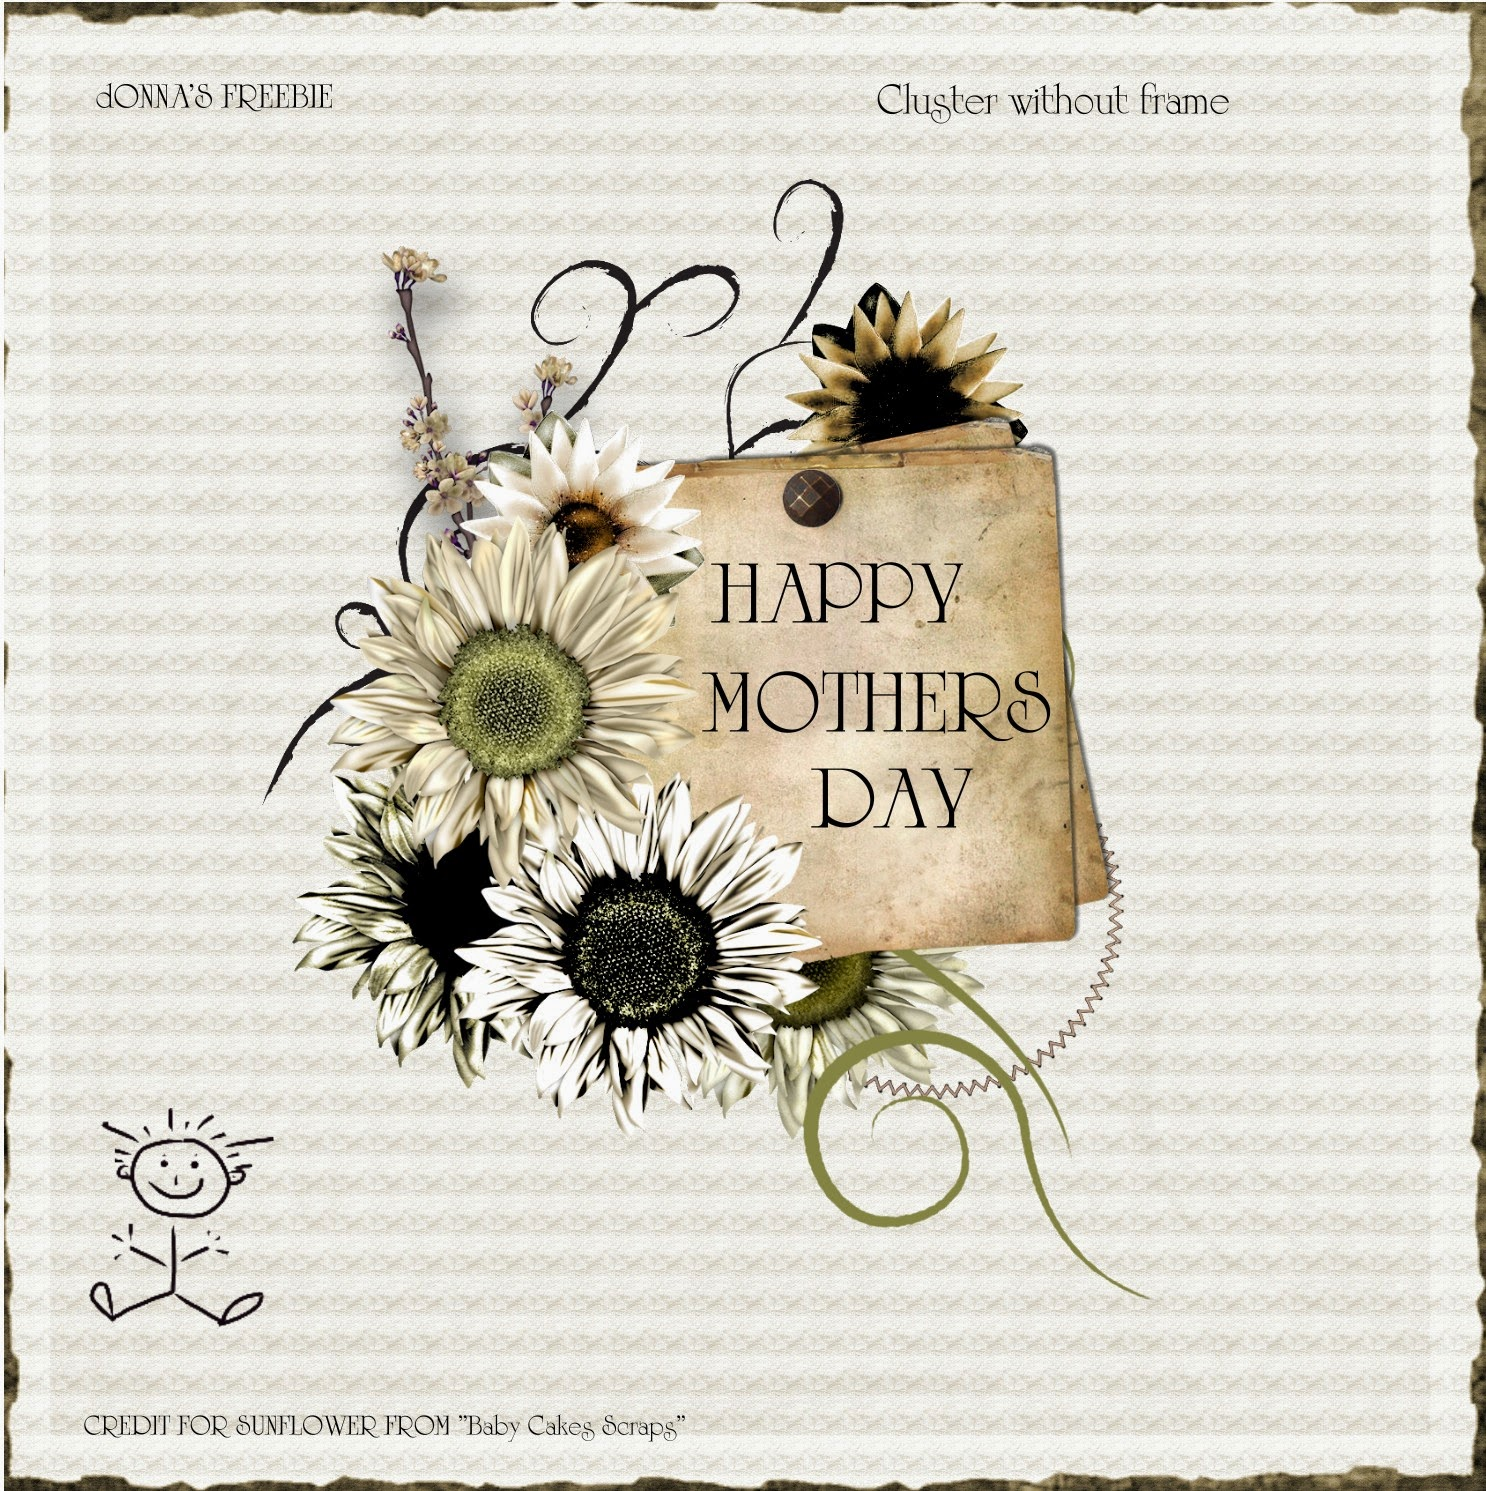 http://4.bp.blogspot.com/-Yzfi5JL4orE/U2wRYQVdxKI/AAAAAAAAEj8/ZBjyikV61hI/s1600/preview+for+Mothers+Day+Cluster+without+frame.jpg